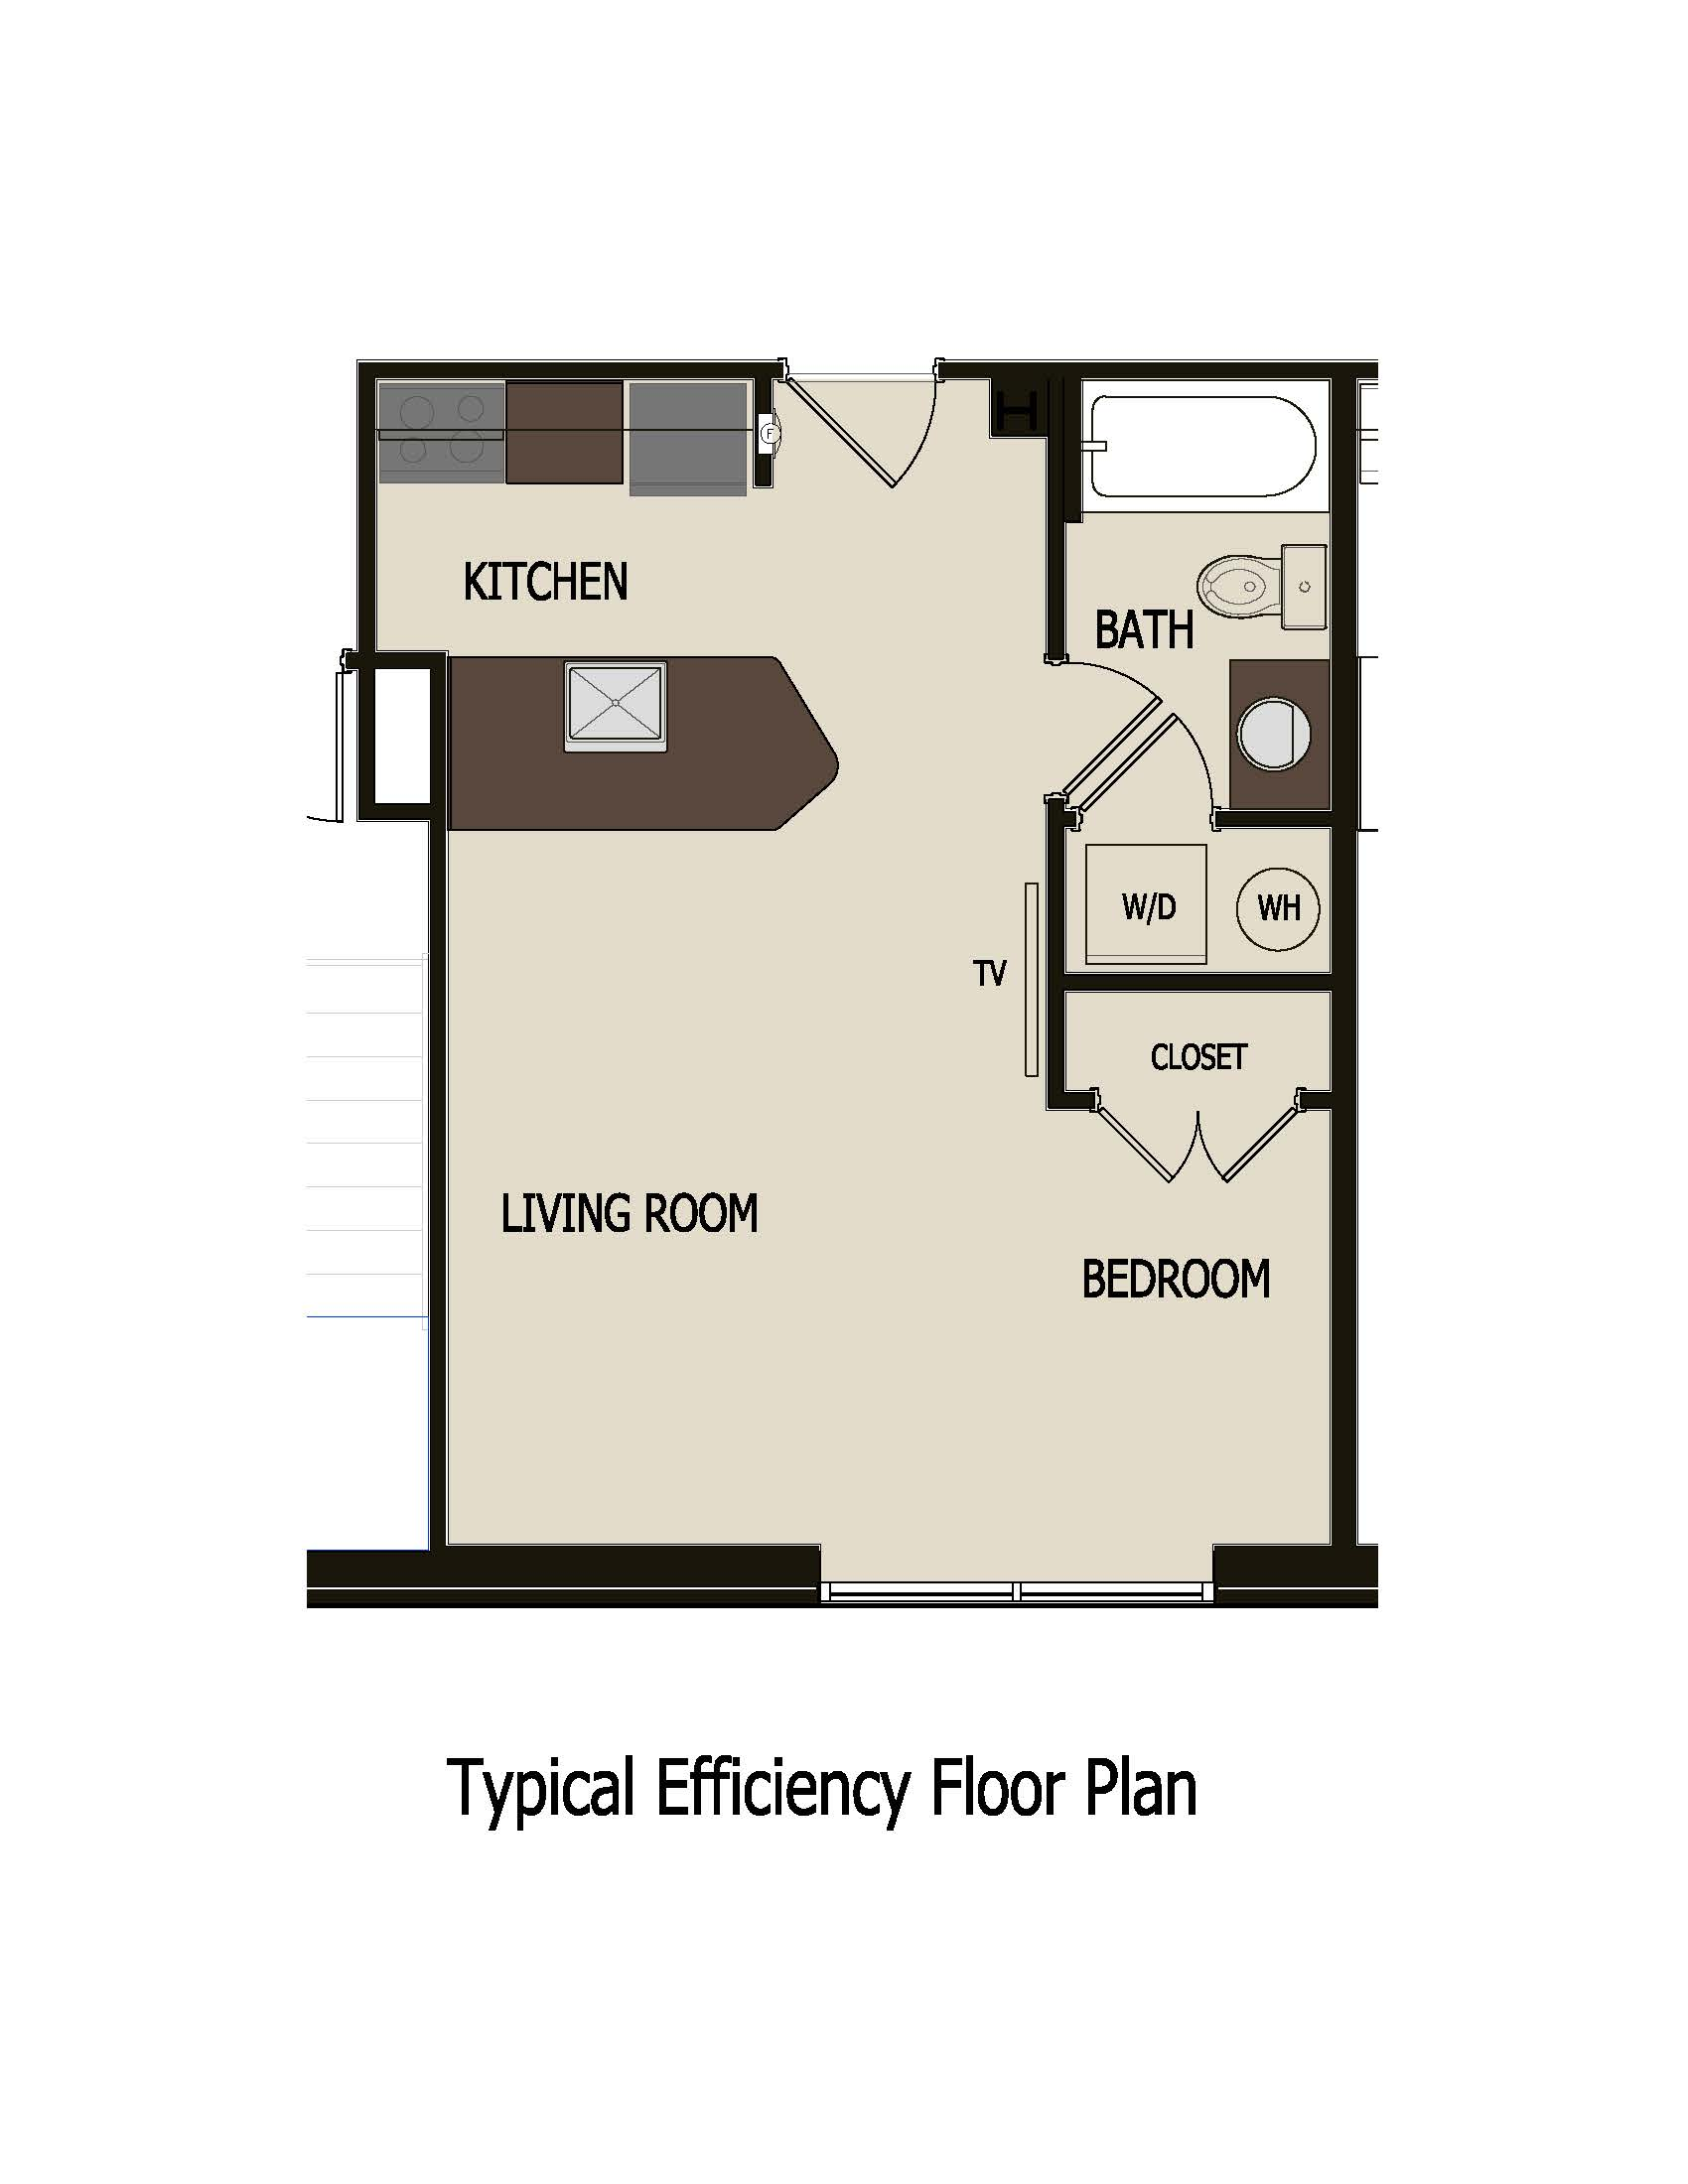 Marquis middle apartments studio apartment for Efficiency floor plans